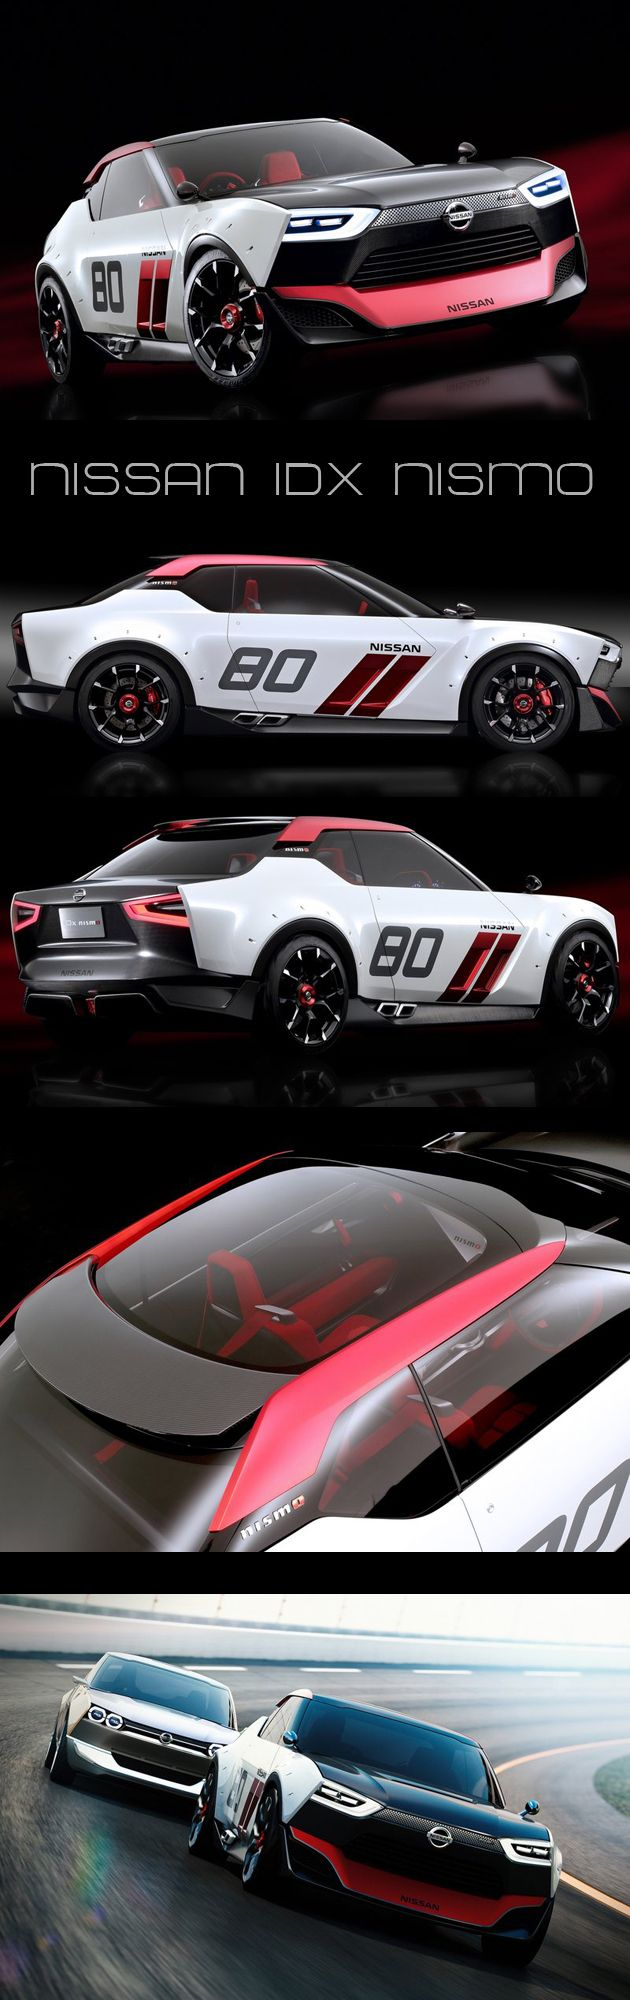 Taking design cues from some of our favorite imports from the 1960s and 1970s (namely the Datsun 510 and first generation Skyline GT-R), the Nissan IDx NISMO concept is drop dead gorgeous.  hiconsumption.com/2013/11/2015-nissan-gt-r-nismo/